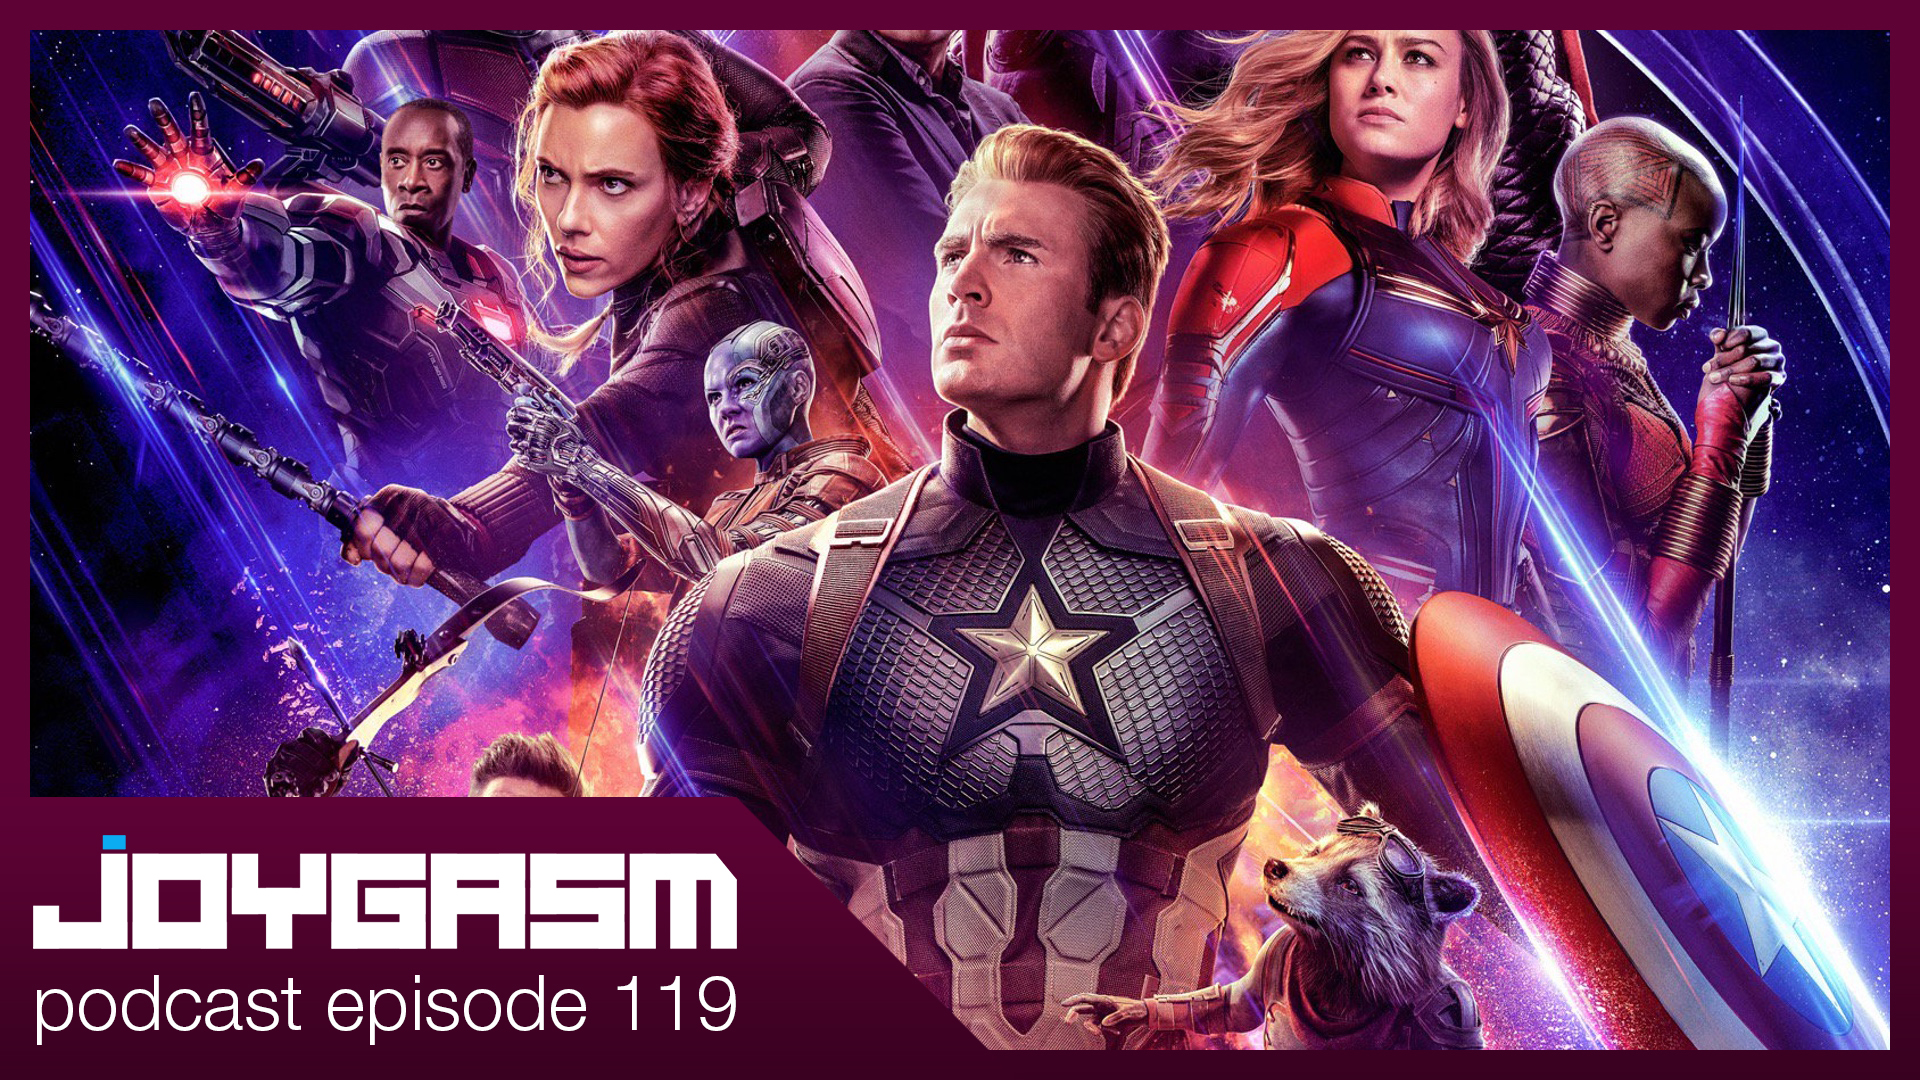 Ep. 119: Avengers Endgame Movie Review